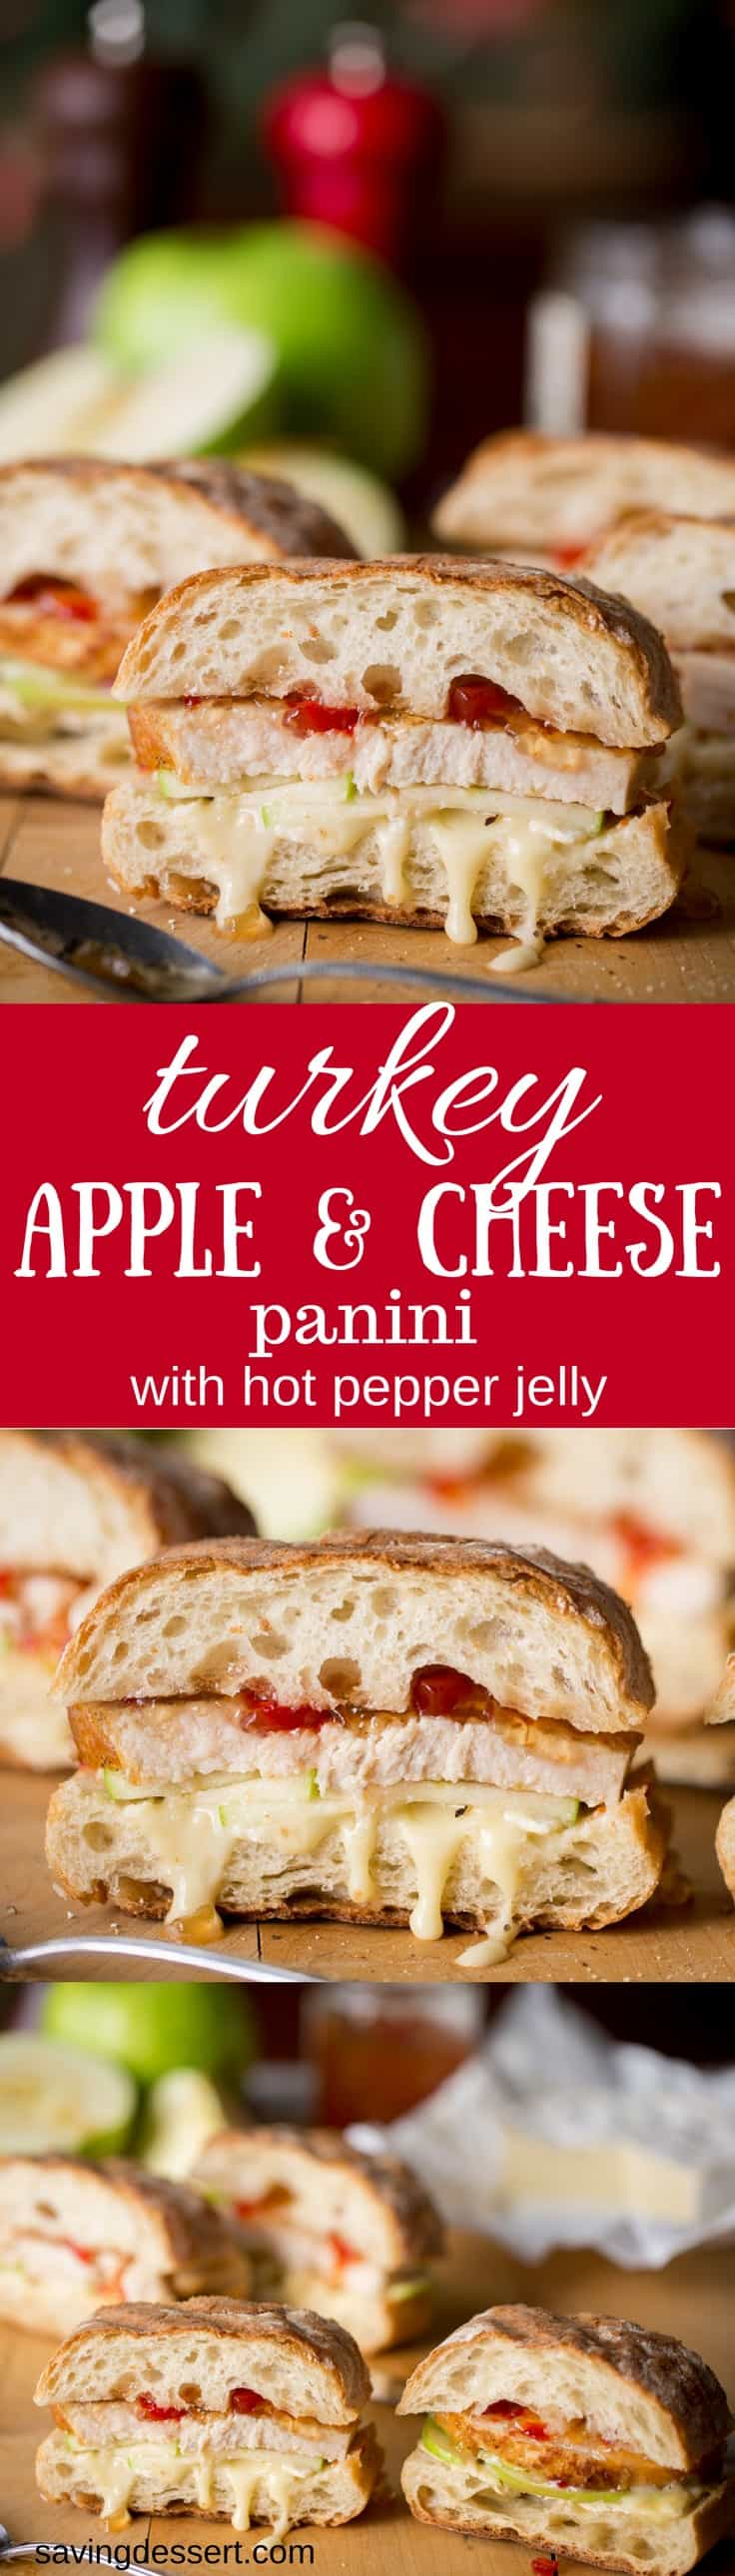 Turkey, Apple & Cheese Panini with Hot Pepper Jelly - A wonderful panini with roasted turkey, tart apple slices, creamy cheese and hot pepper jelly www.savingdessert.com #savingroomfordessert #turkeysandwich #turkeypanini #panini #leftoverturkey #thanksgiving